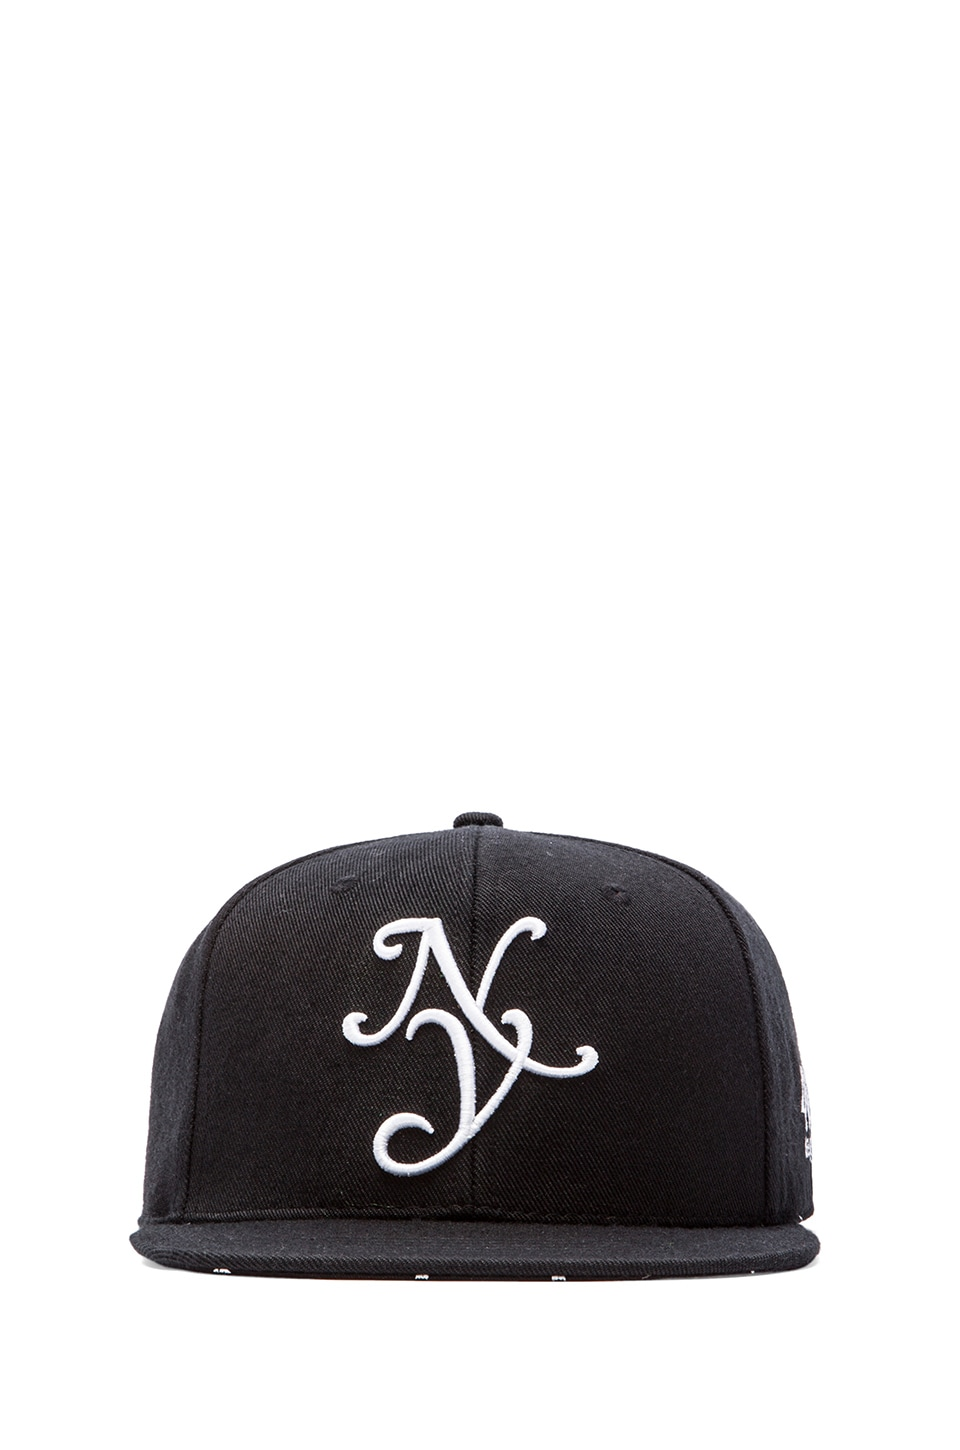 40 OZ NY New Yorker Cap in Black